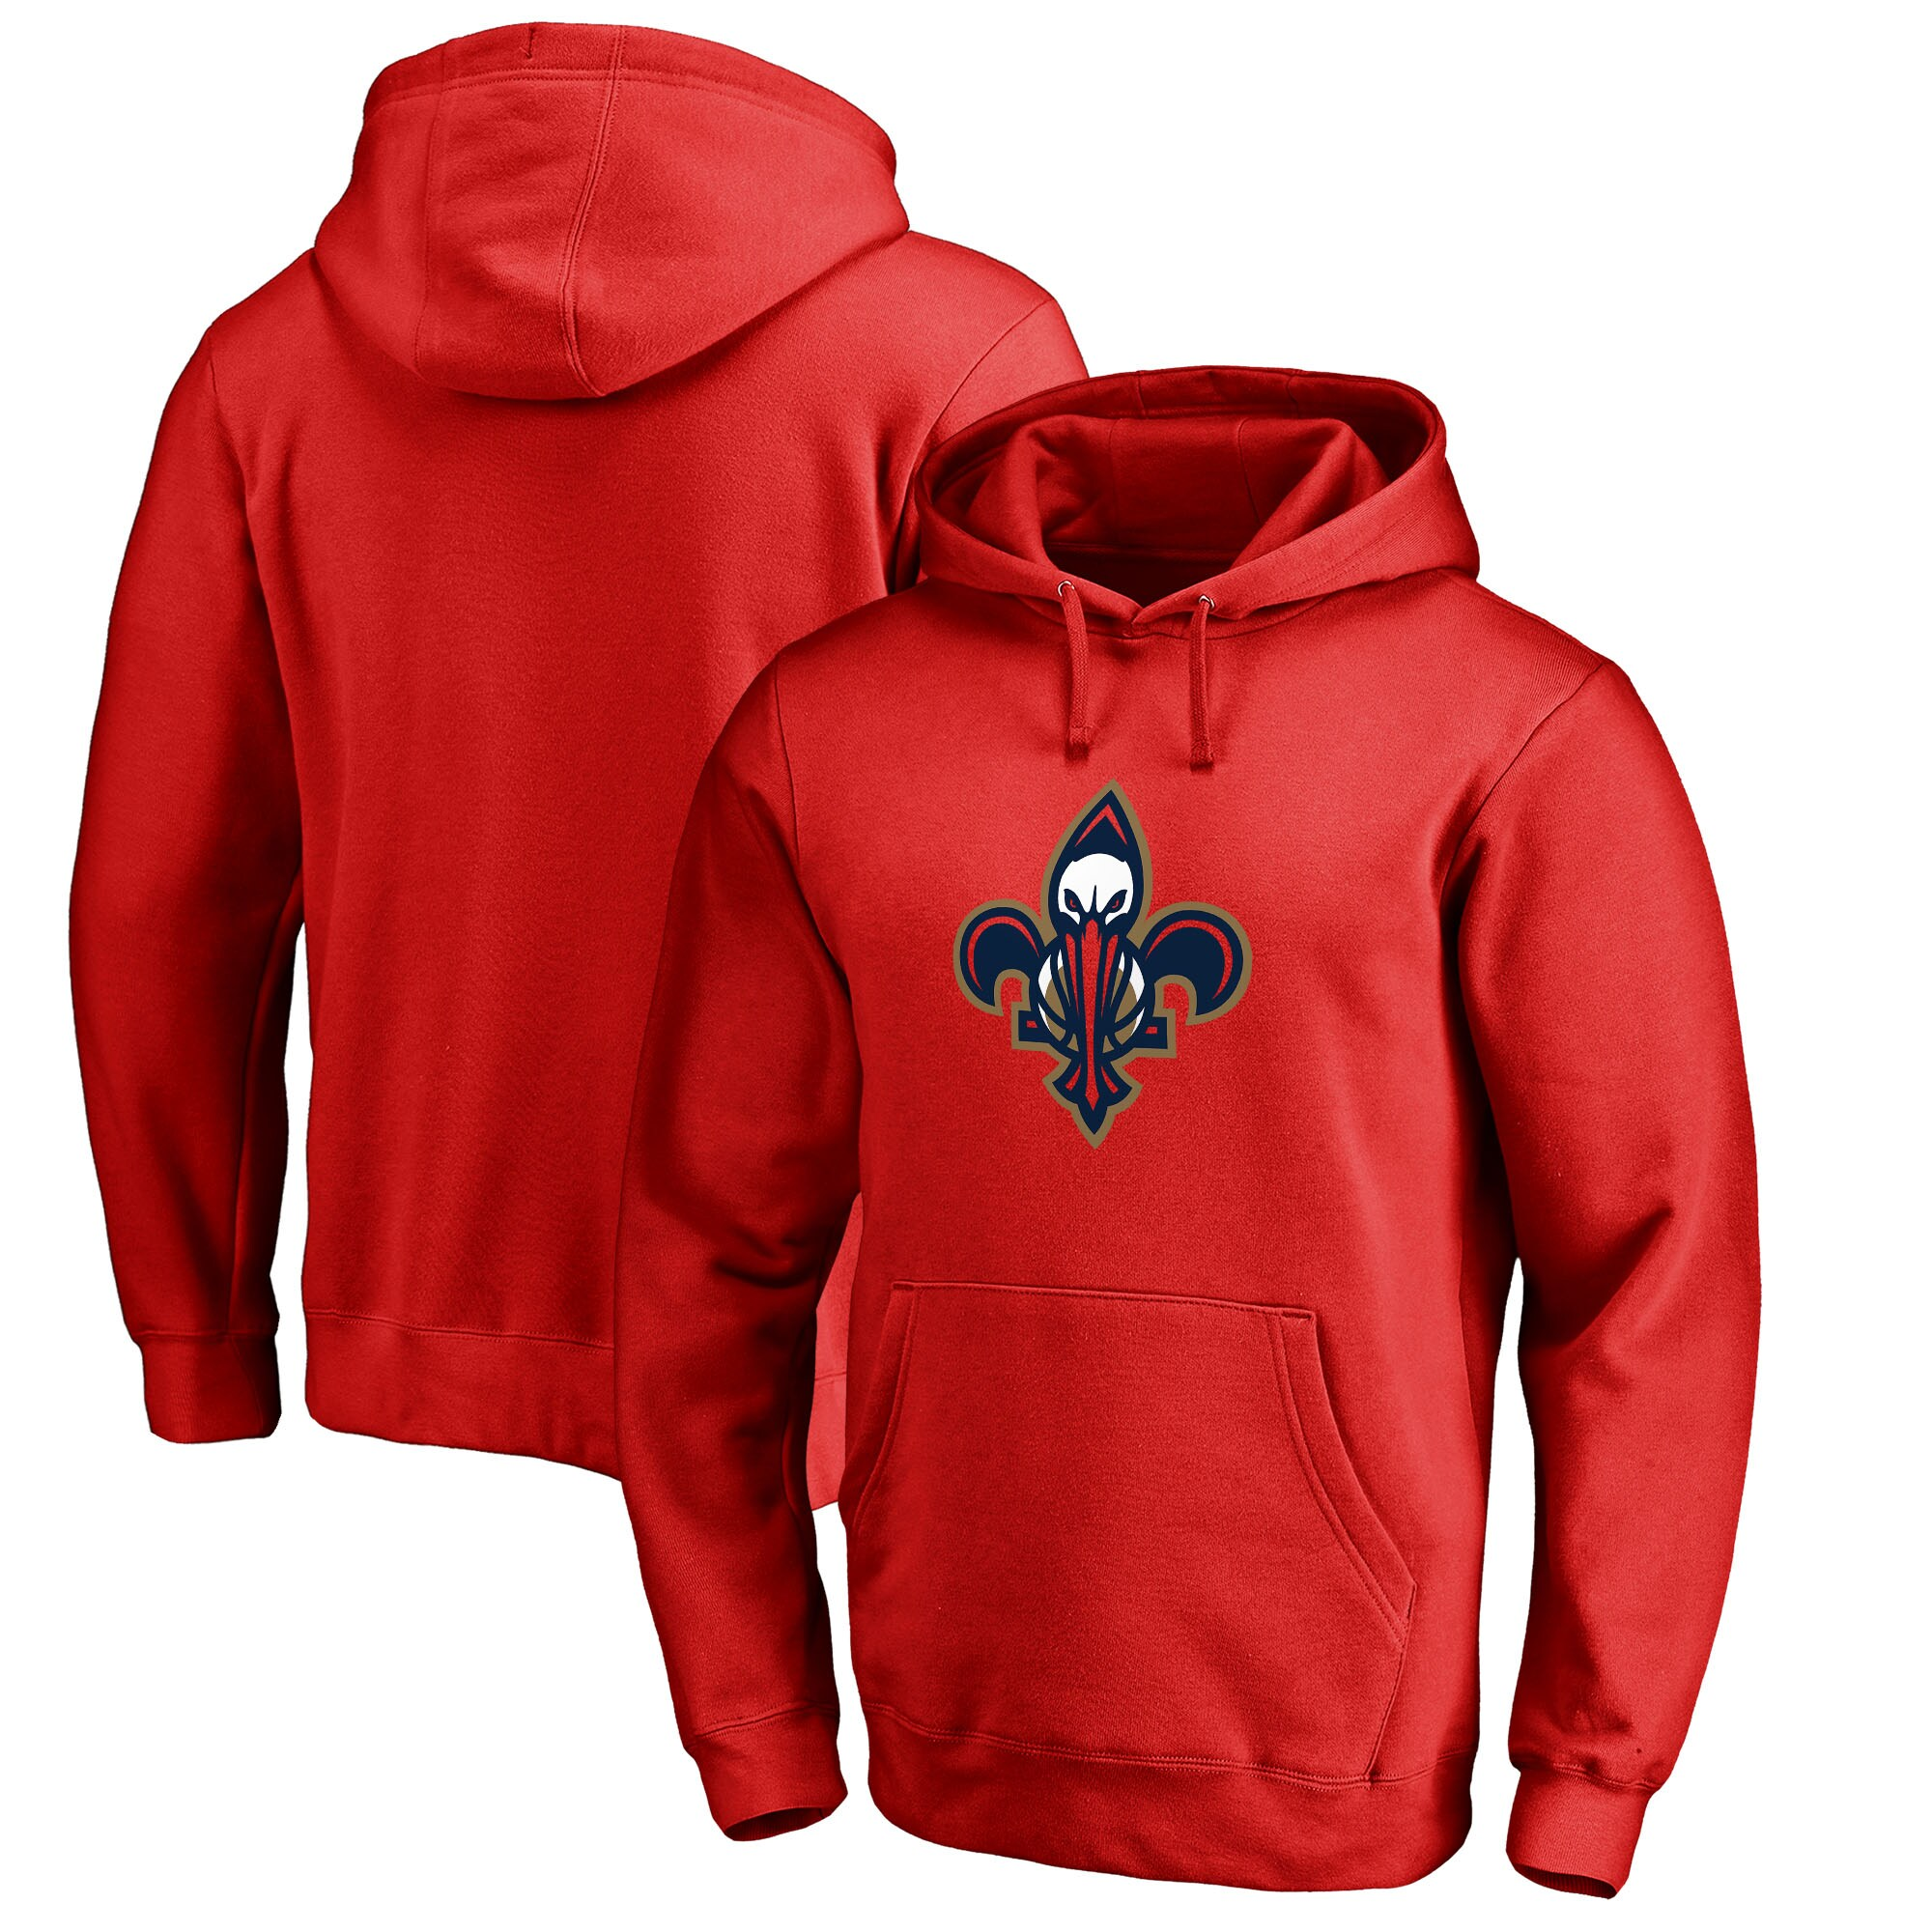 New Orleans Pelicans Fanatics Branded Alternate Logo Pullover Hoodie - Red